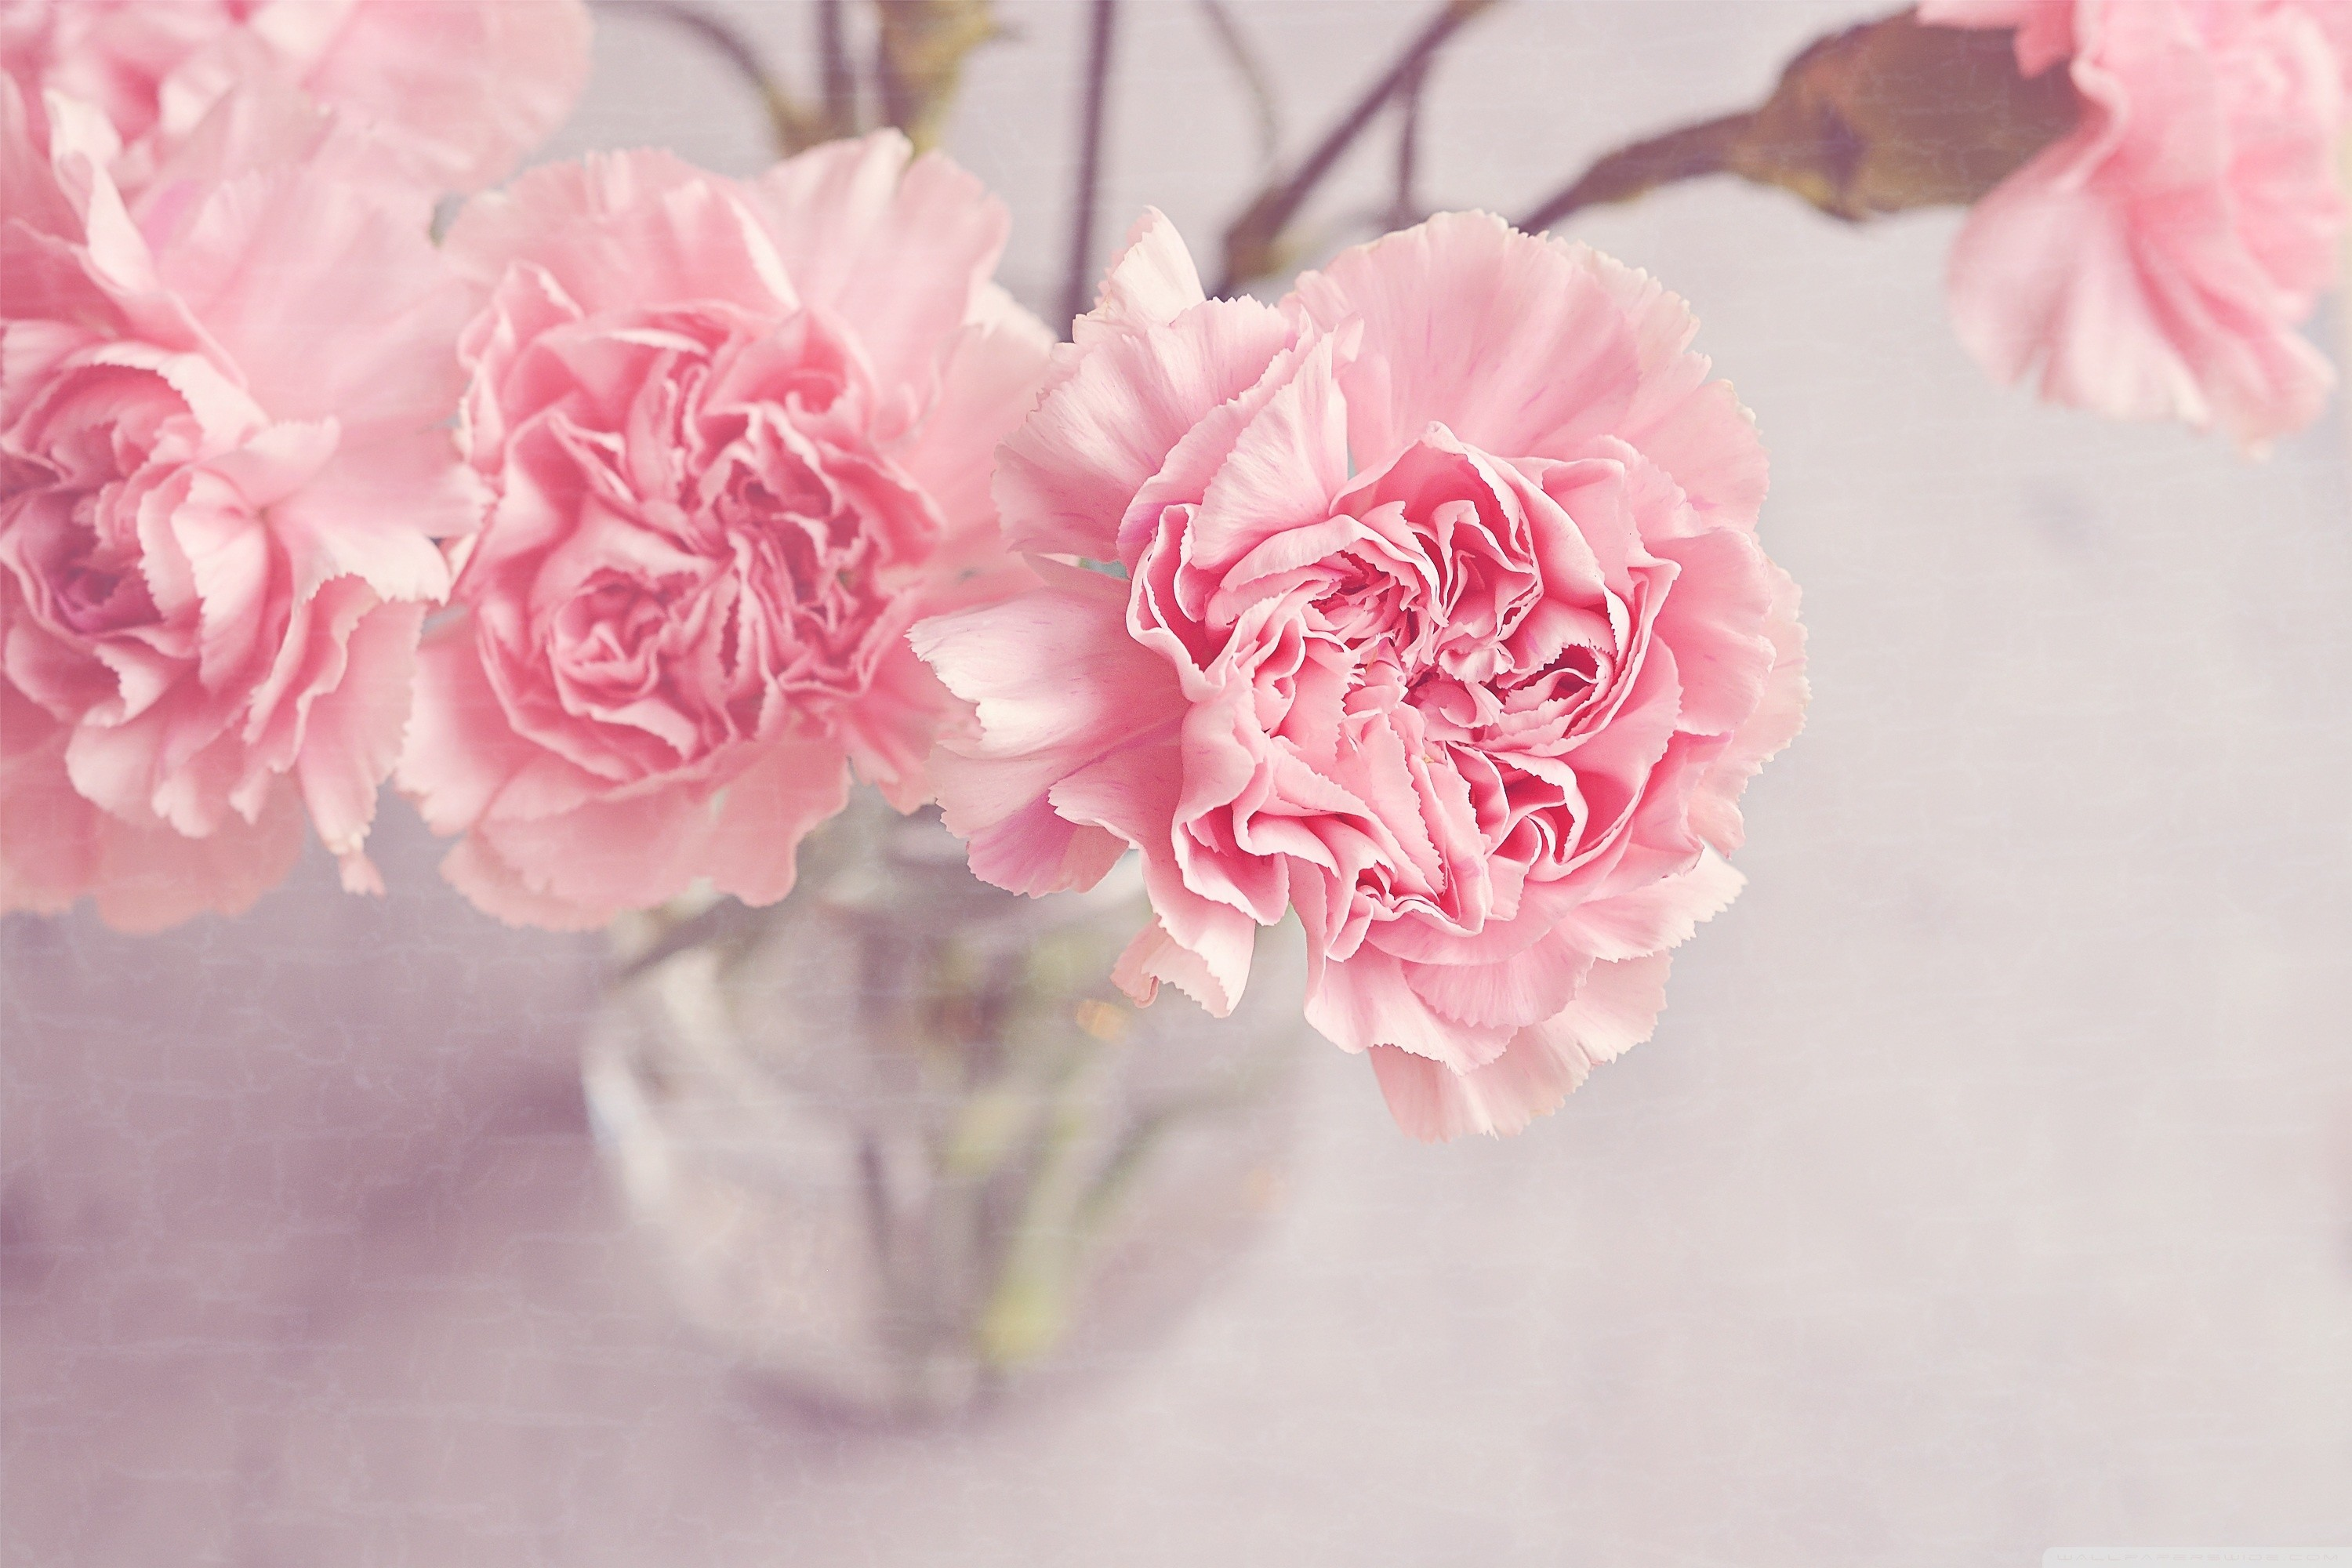 3000x2000 light_pink_carnations_flowers_in_a_vase-wallpaper.  light_pink_carnations_flowers_in_a_vase-wallpaper